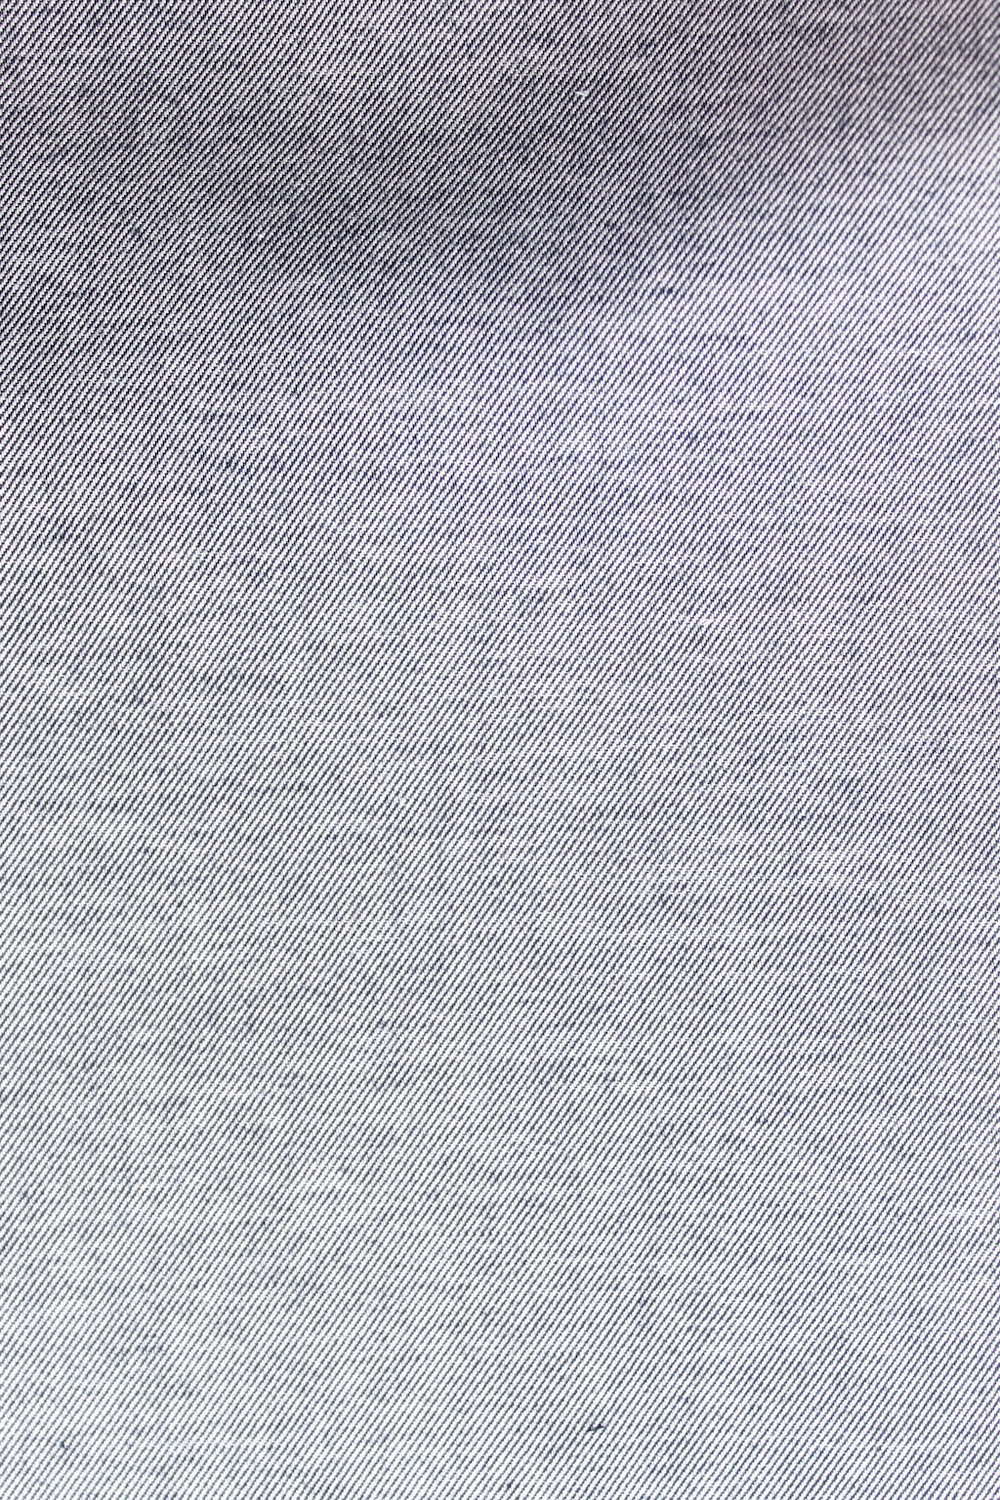 6709 Gray Chambray Twill.JPG